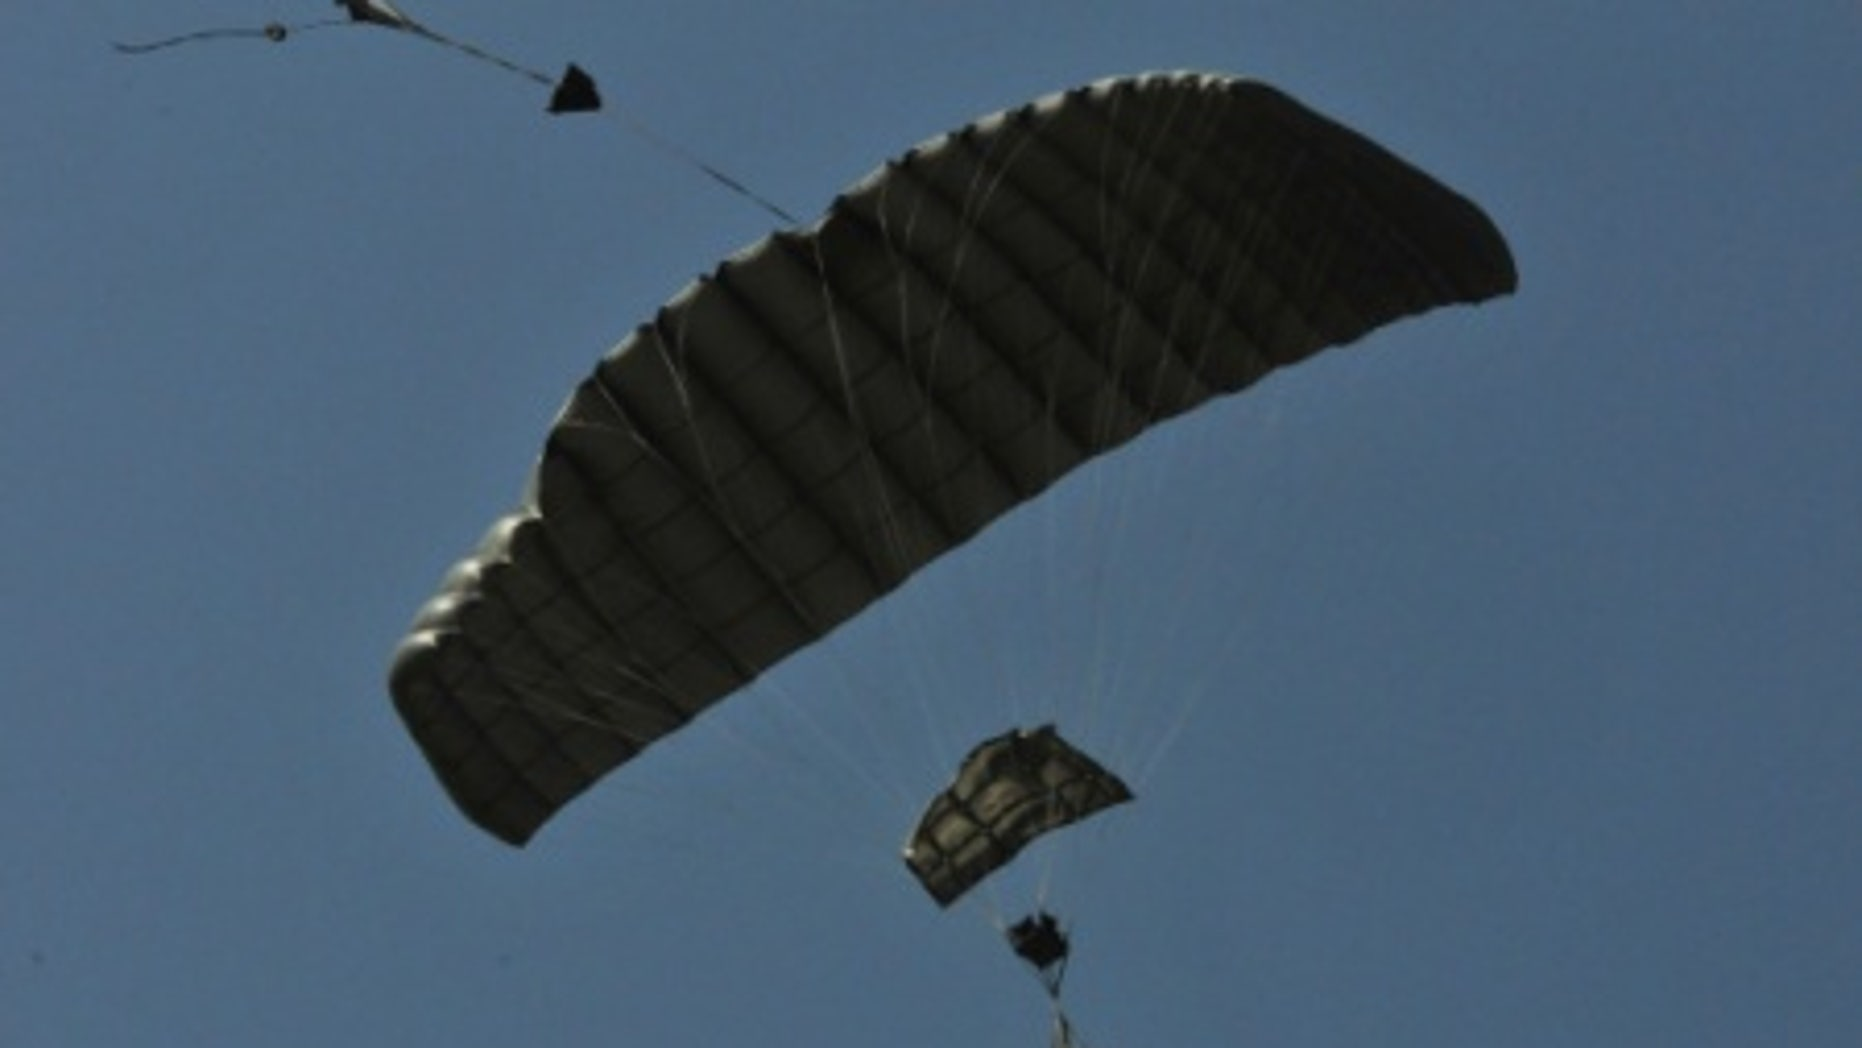 File photo - A joint precision airdrop system (JPADS) guides itself to the ground following its drop from a C-130 aircraft at Normandy Drop Zone in Fort Bragg, N.C., May 23, 2013. (U.S. Army photo by Sgt. Amanda Tucker/Released)